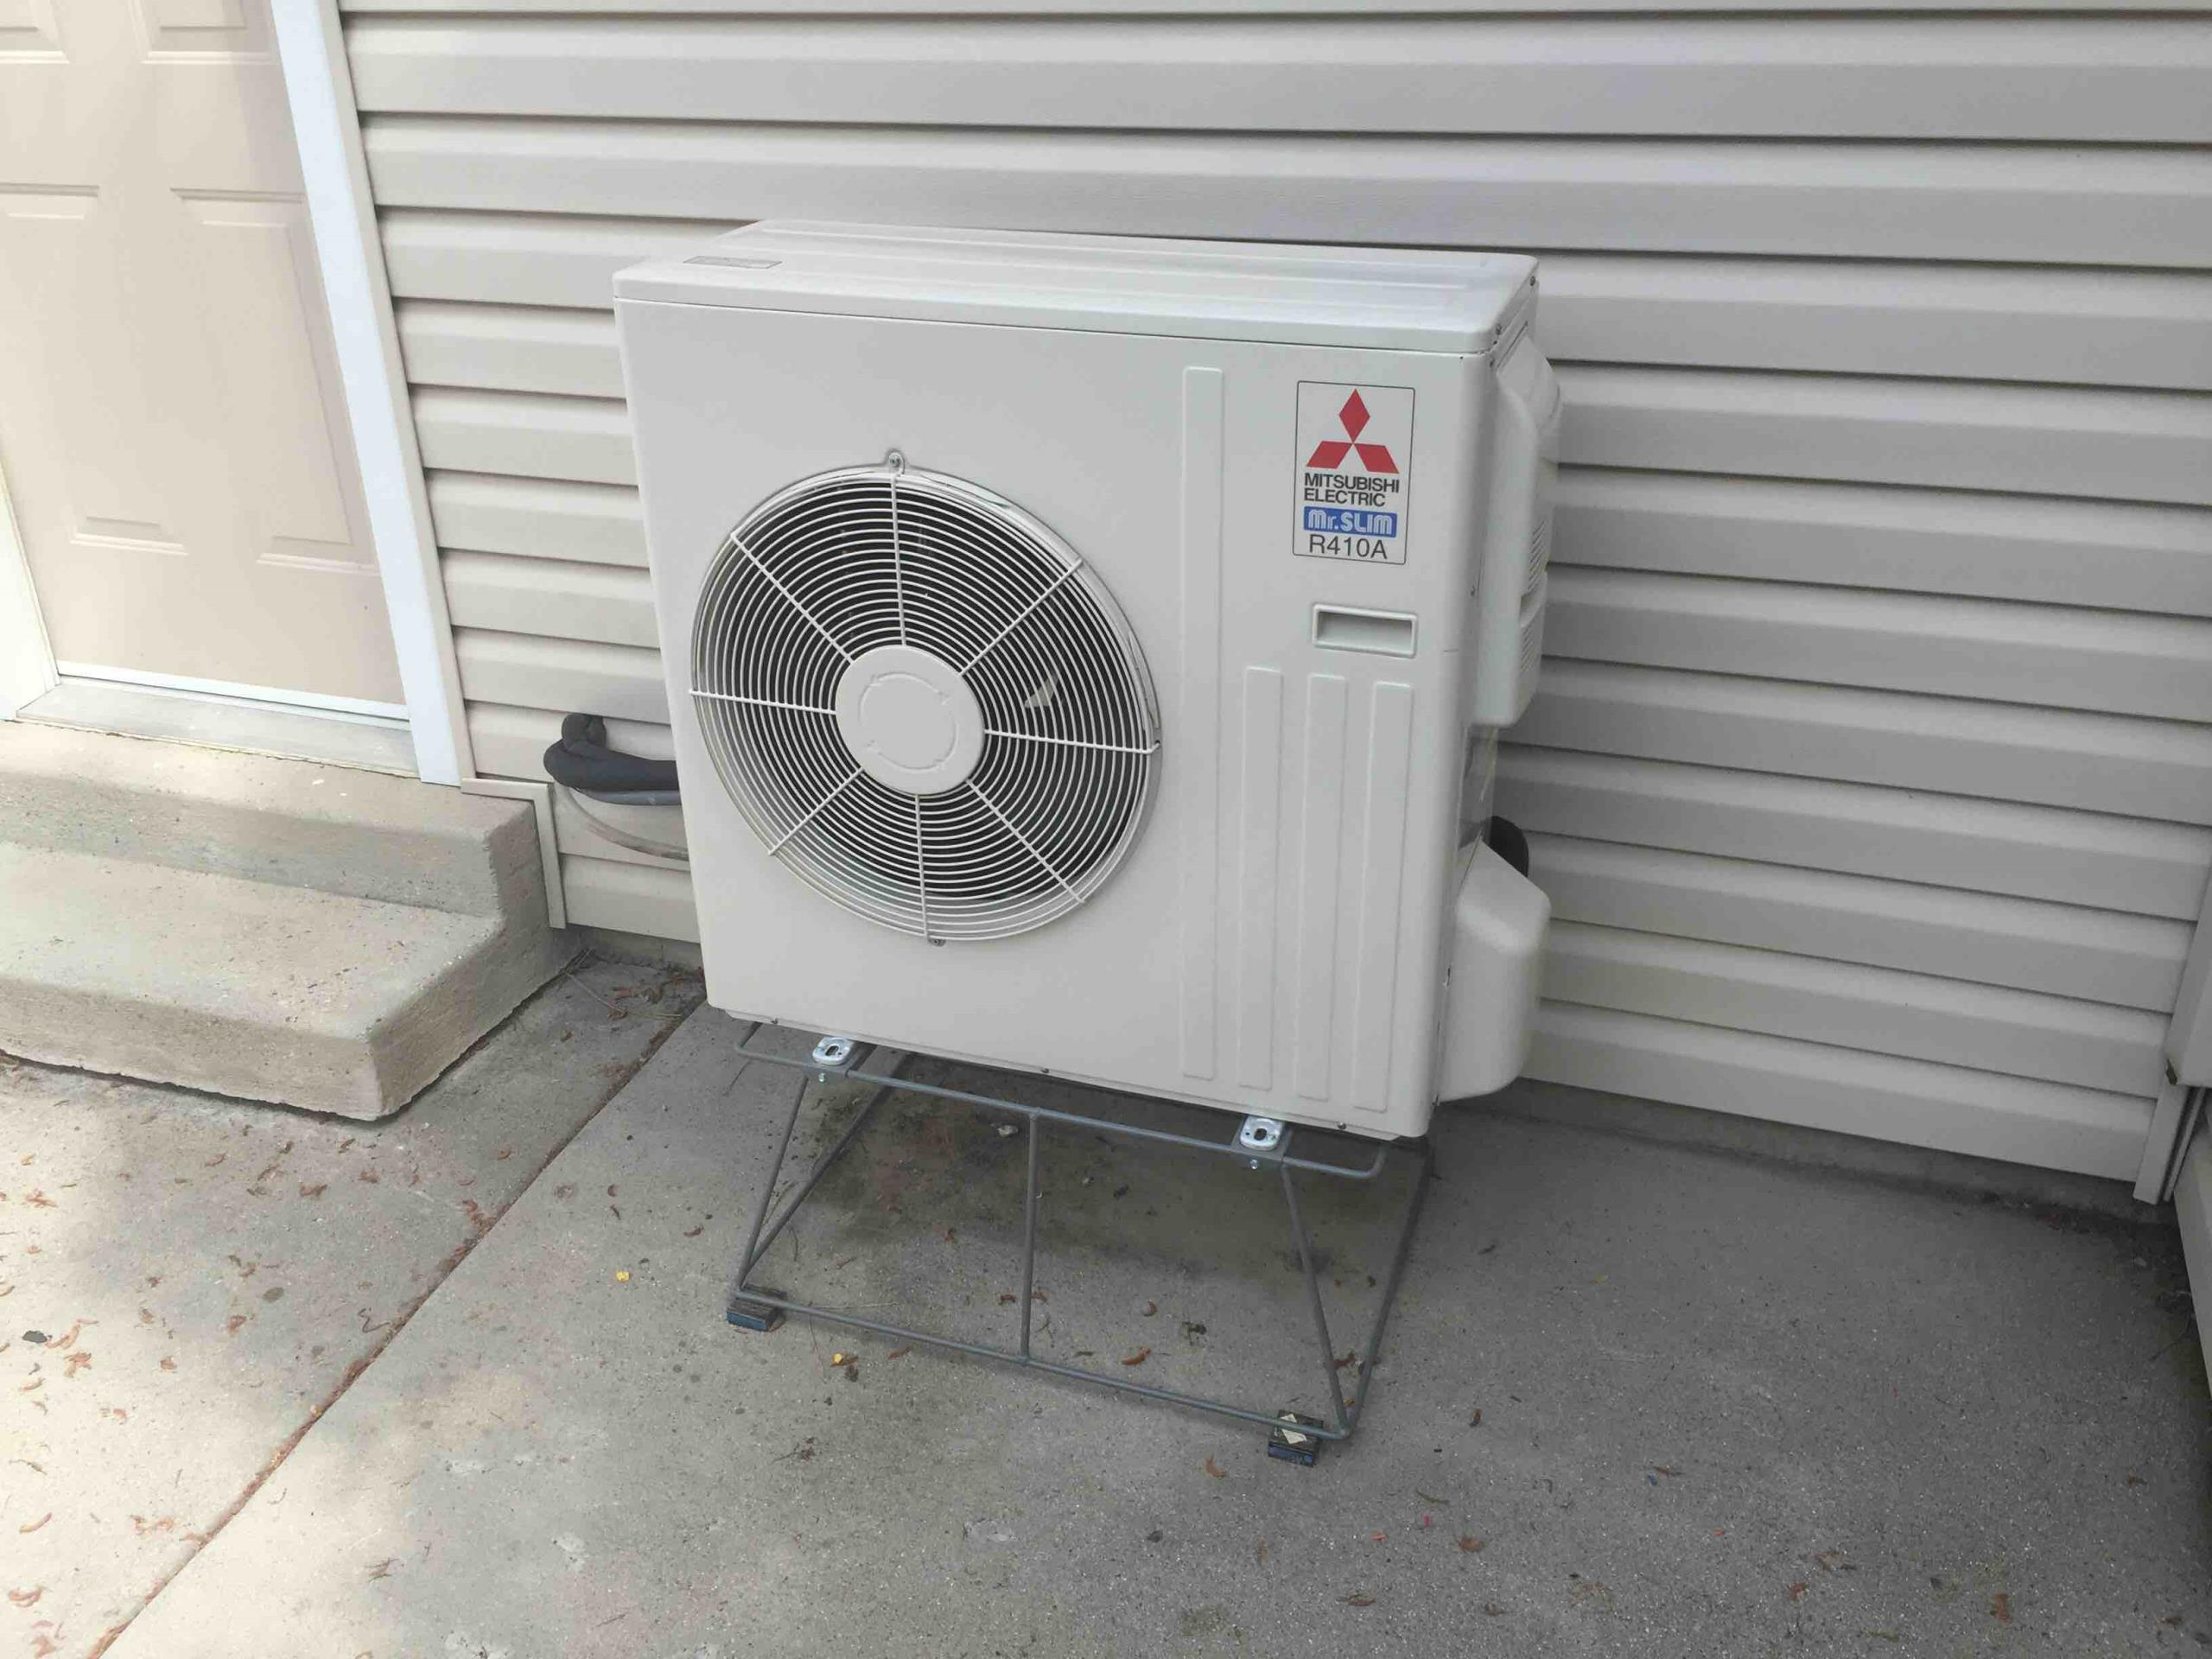 South Jordan, UT - Installed a new Mitsubishi ductless split air conditioner